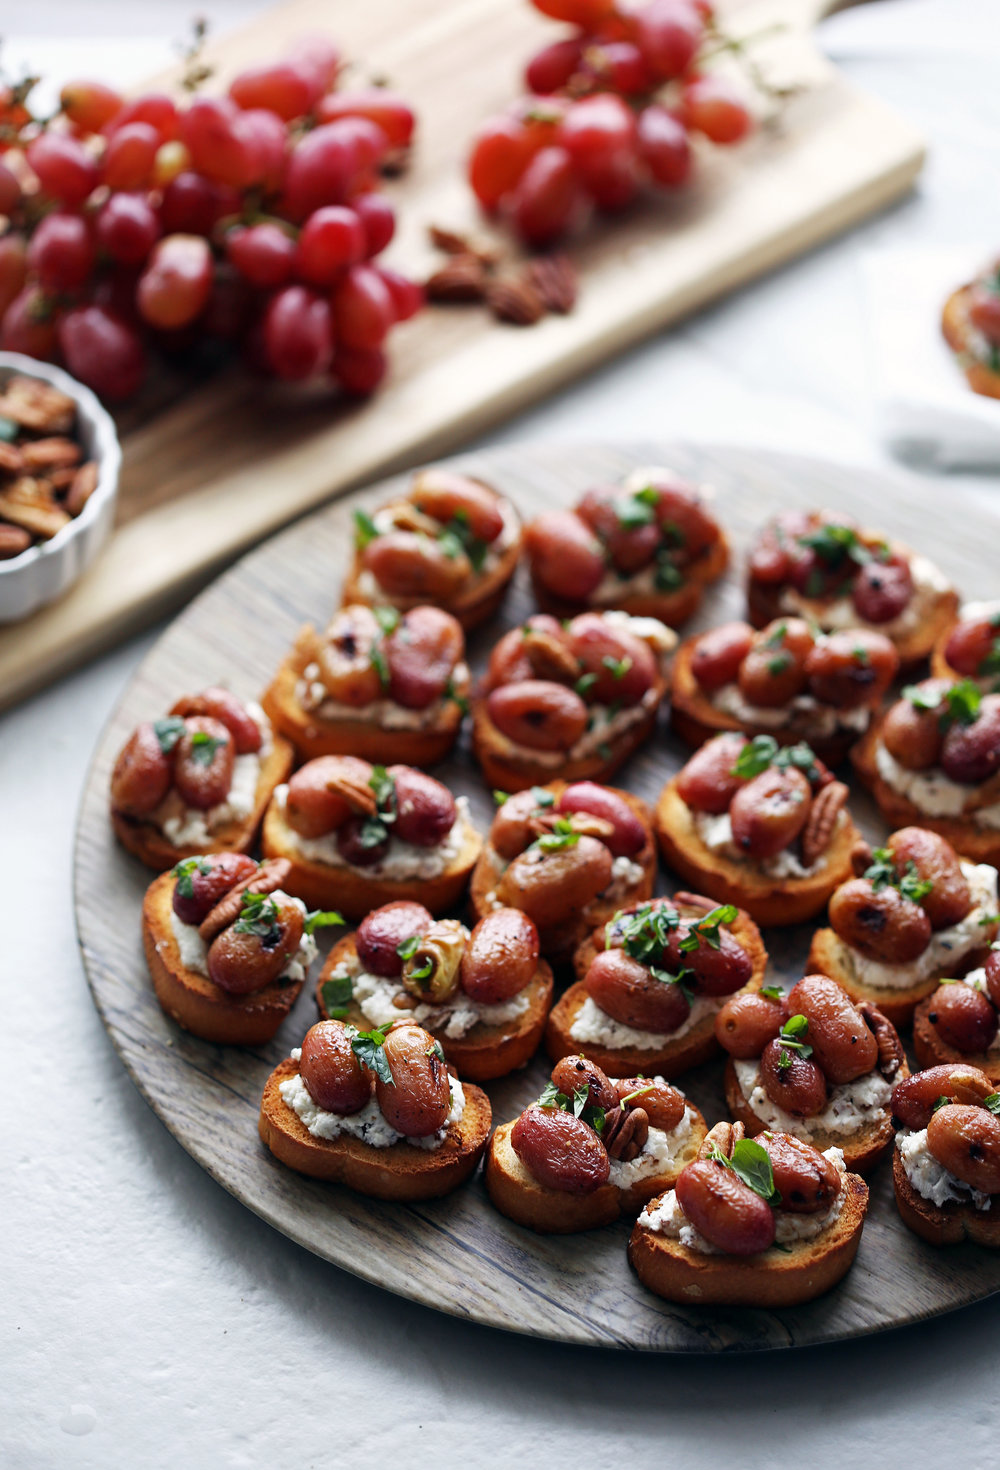 Balsamic roasted grape and goat cheese crostini garnished with fresh mint on a round platter.